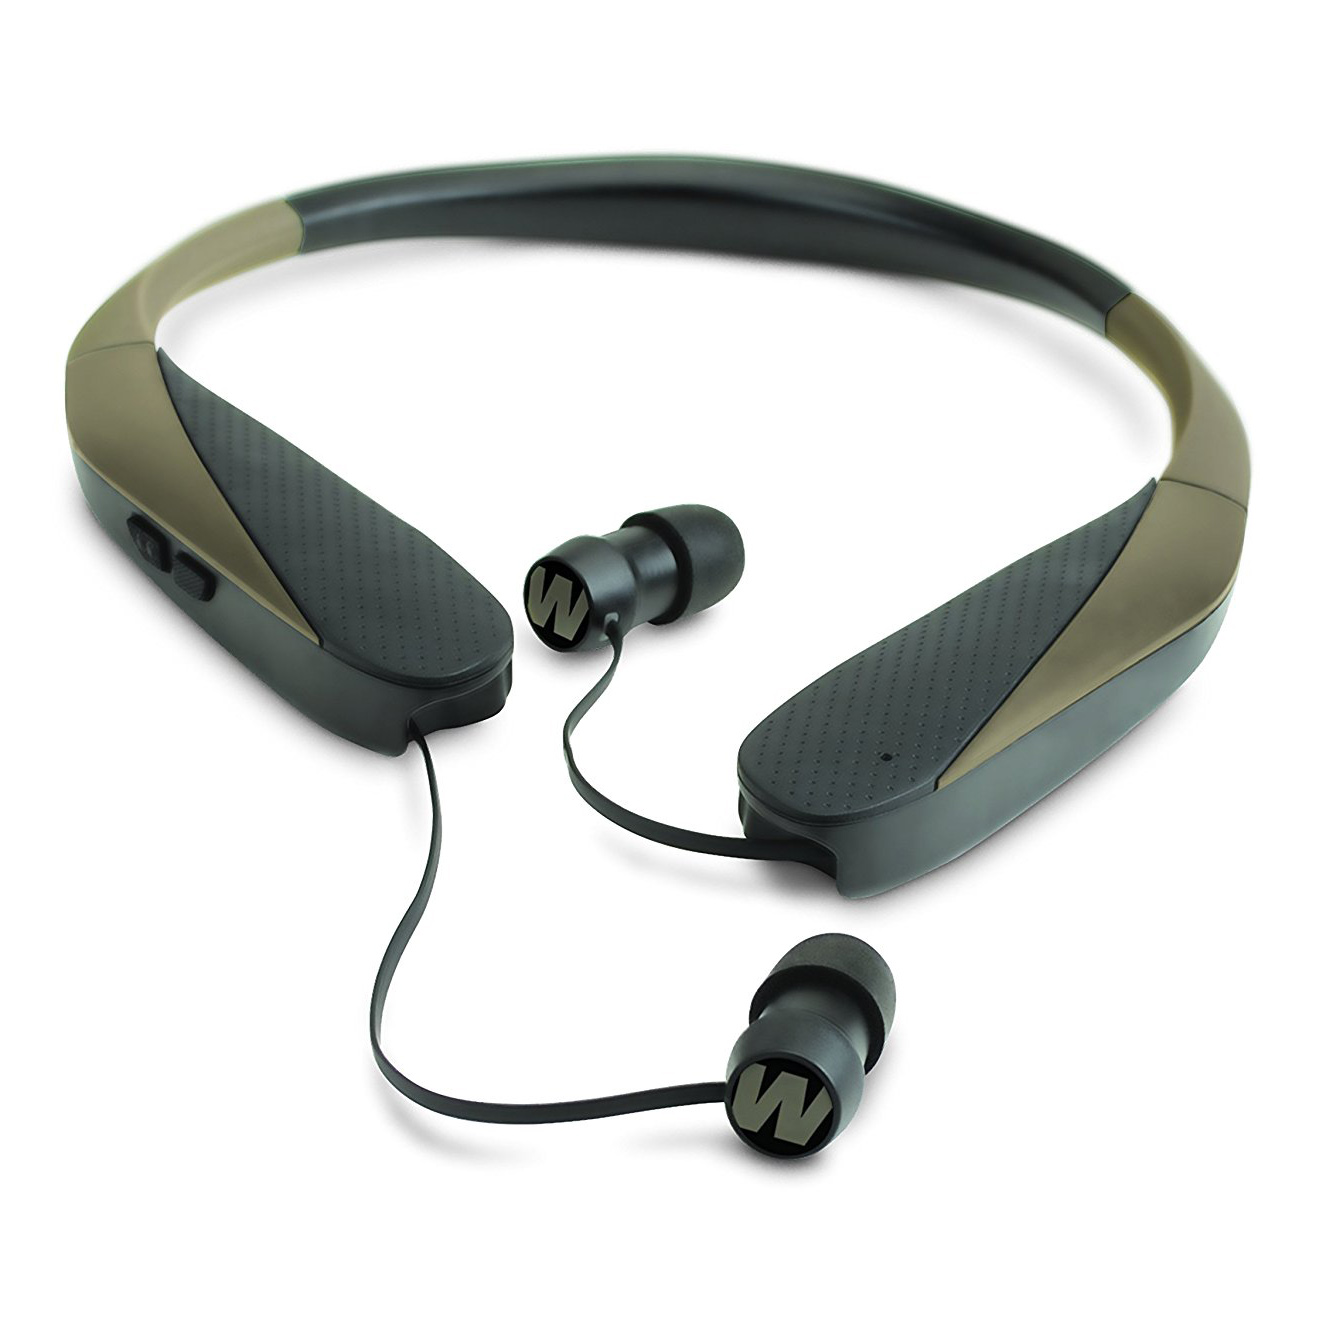 WALKERS GAME EAR RAZR X RETRACT BUDS ELECTRONIC 31 DB FLAT DARK EARTH